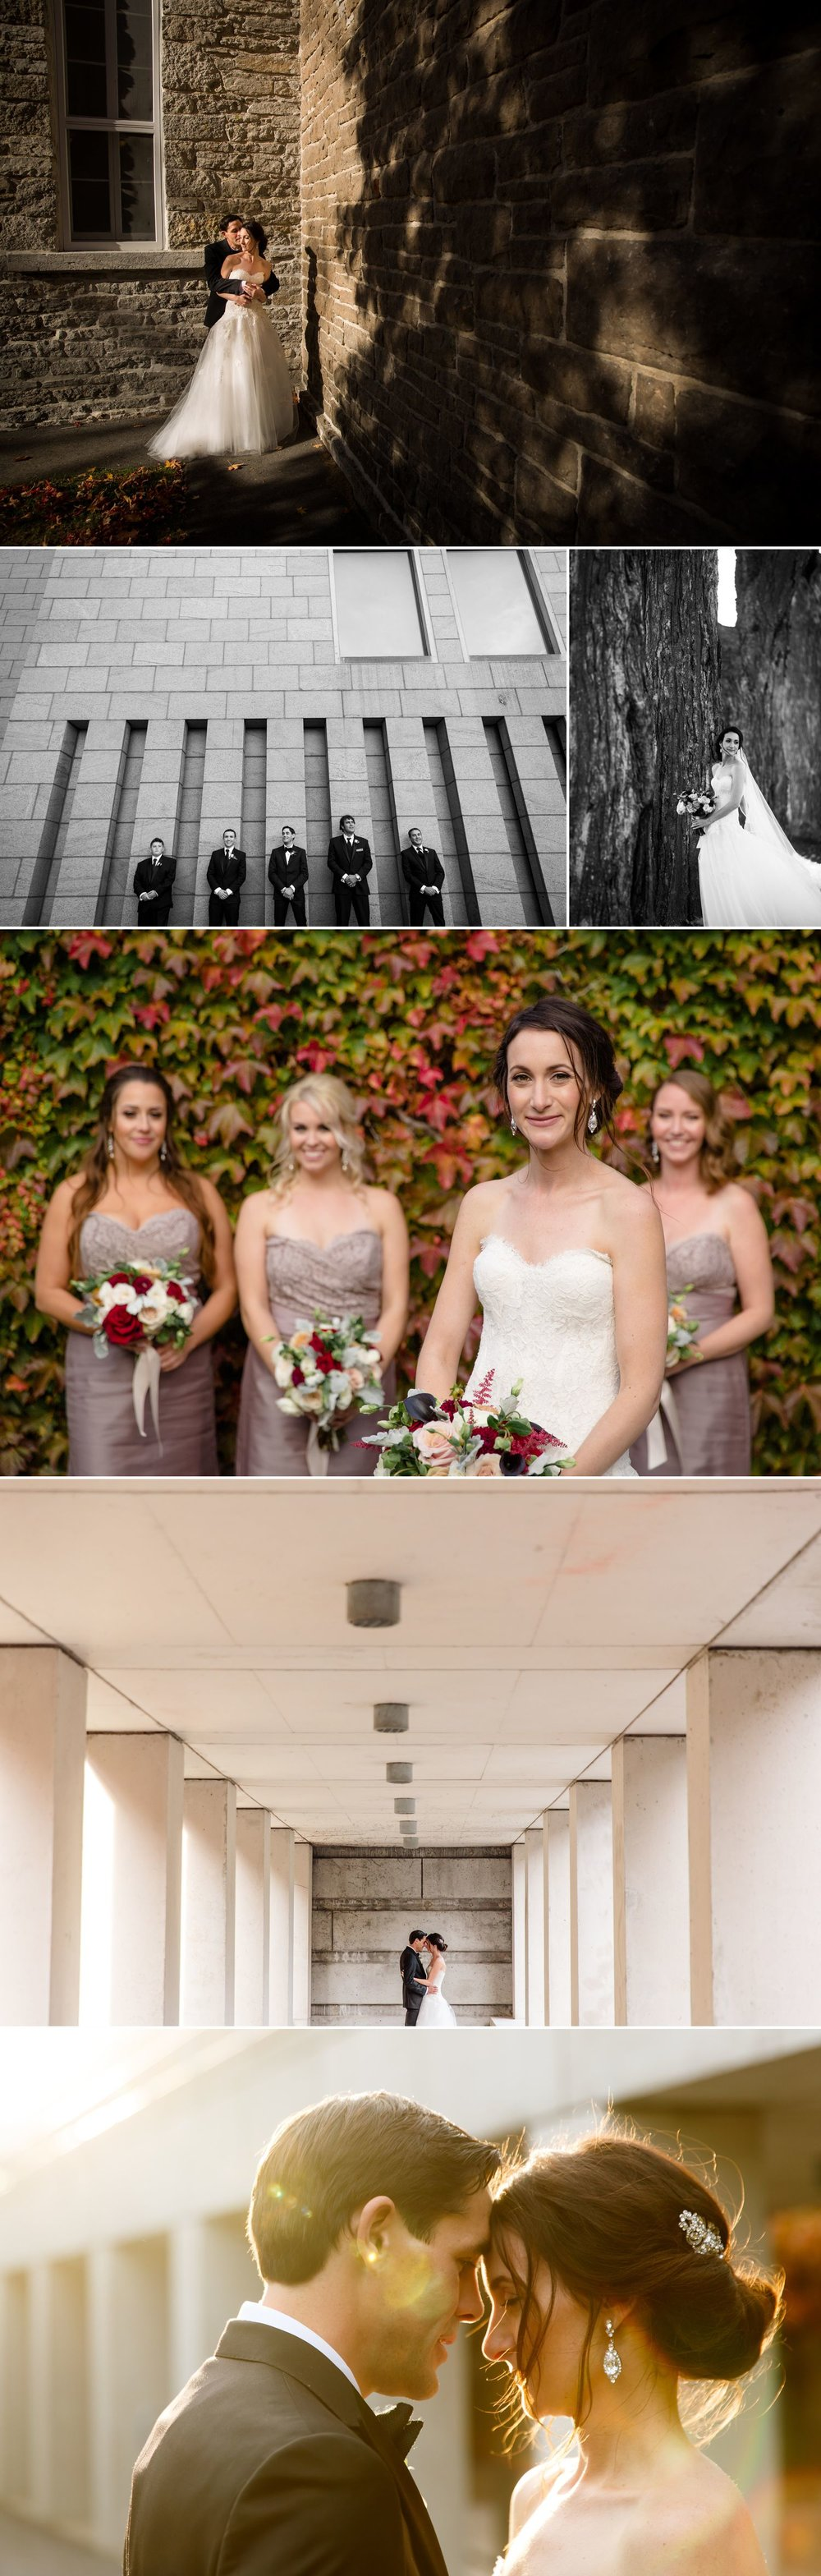 Wedding party group photographs at the national art gallery in ottawa